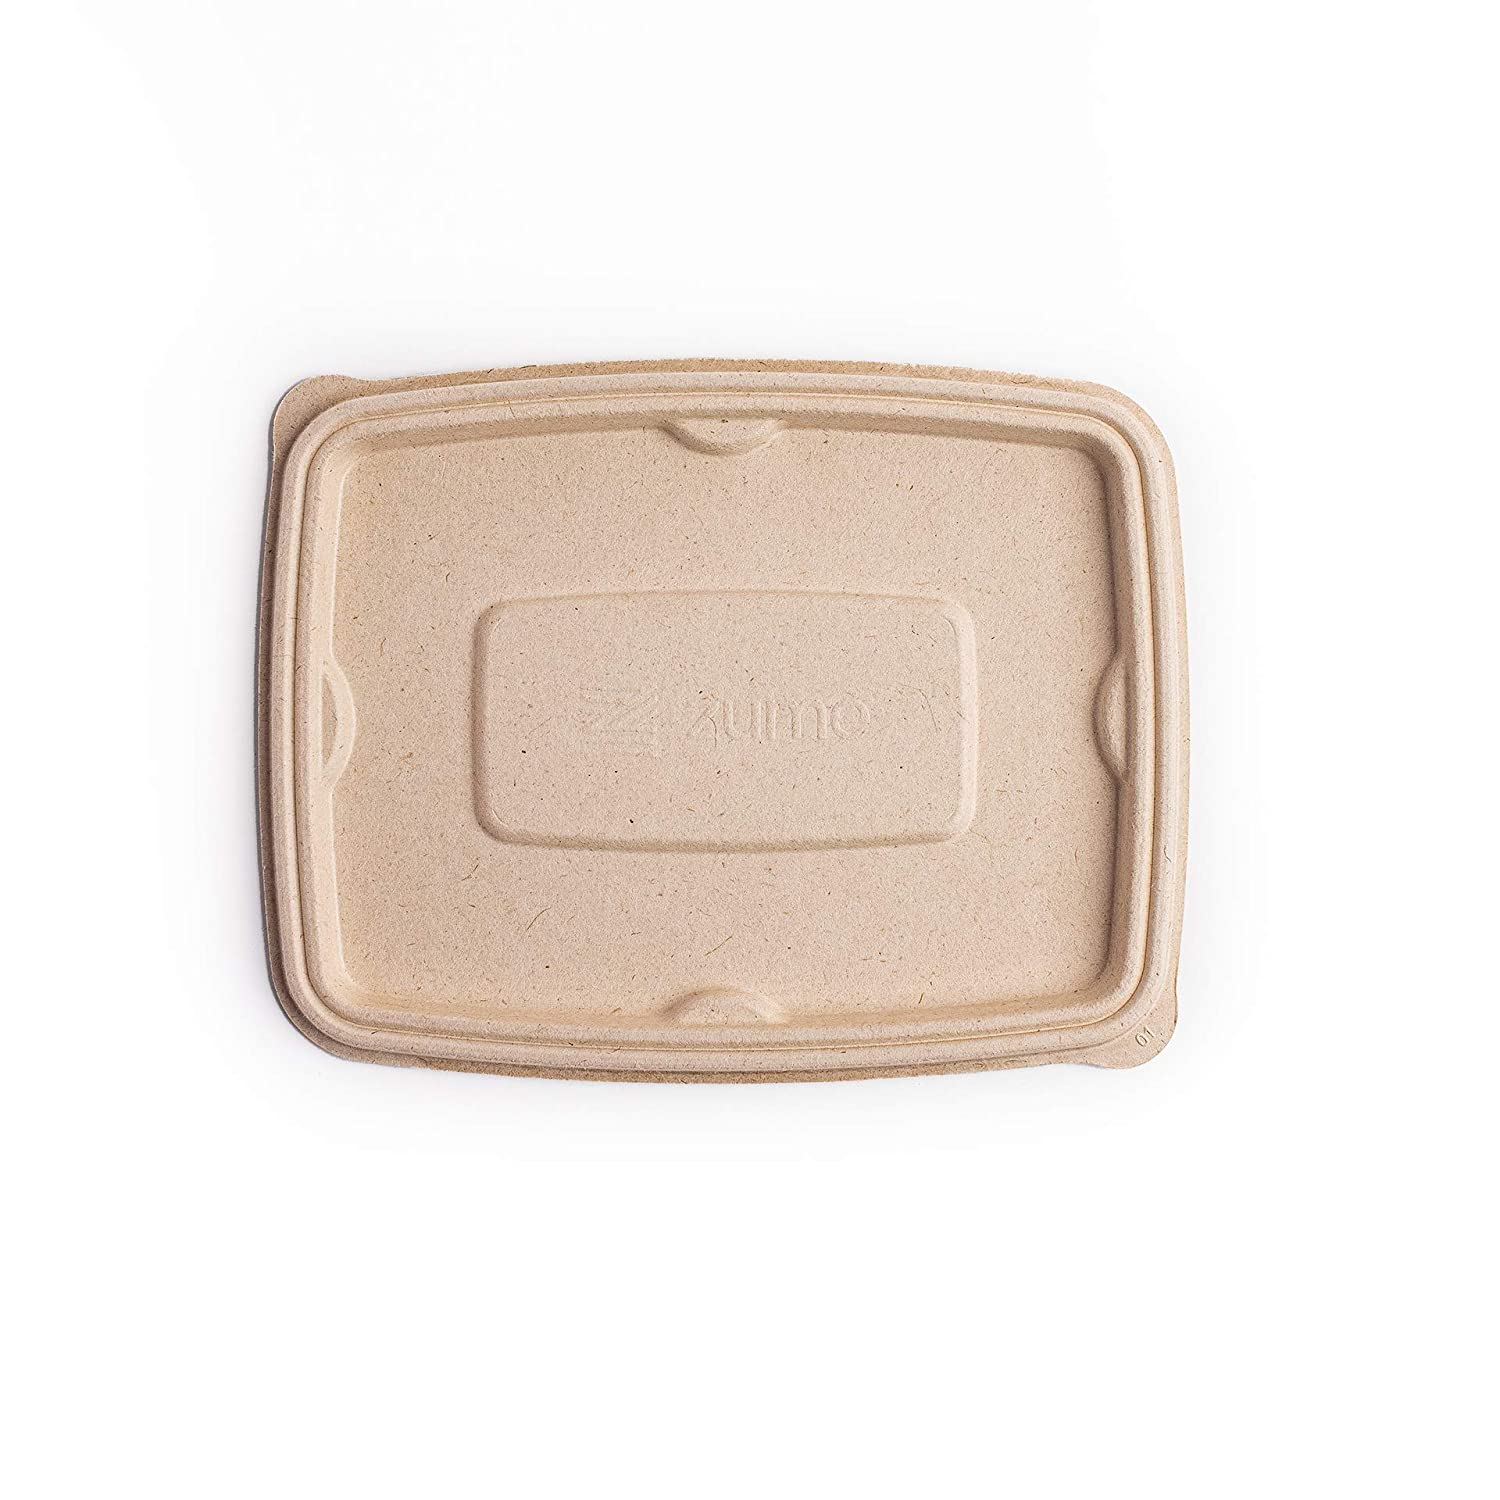 Zume Premium Compostable, Eco Friendly, Disposable, 24 oz-32oz/750ml-1000ml Rectangular Container Lid, Natural (Pack of 100)